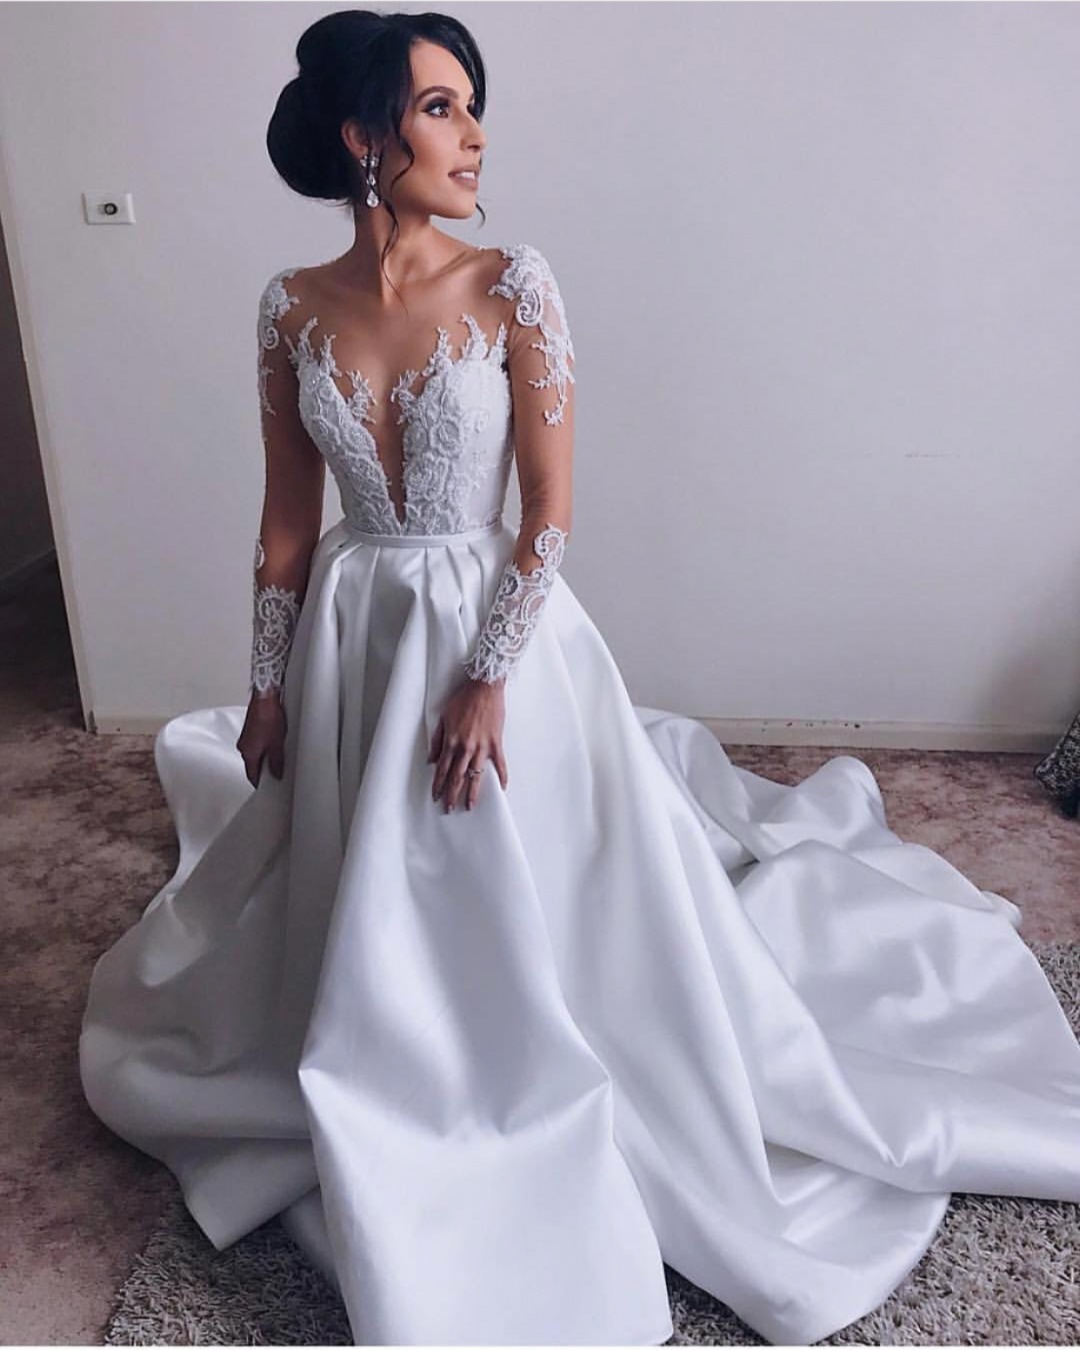 Gorgeous White Long Sleeves Wedding Dress Satin Sweep Train Scoop Neck Lace Appliques Illusion Modest Bridal Gown Yooyoodress Online Store Powered By Storenvy